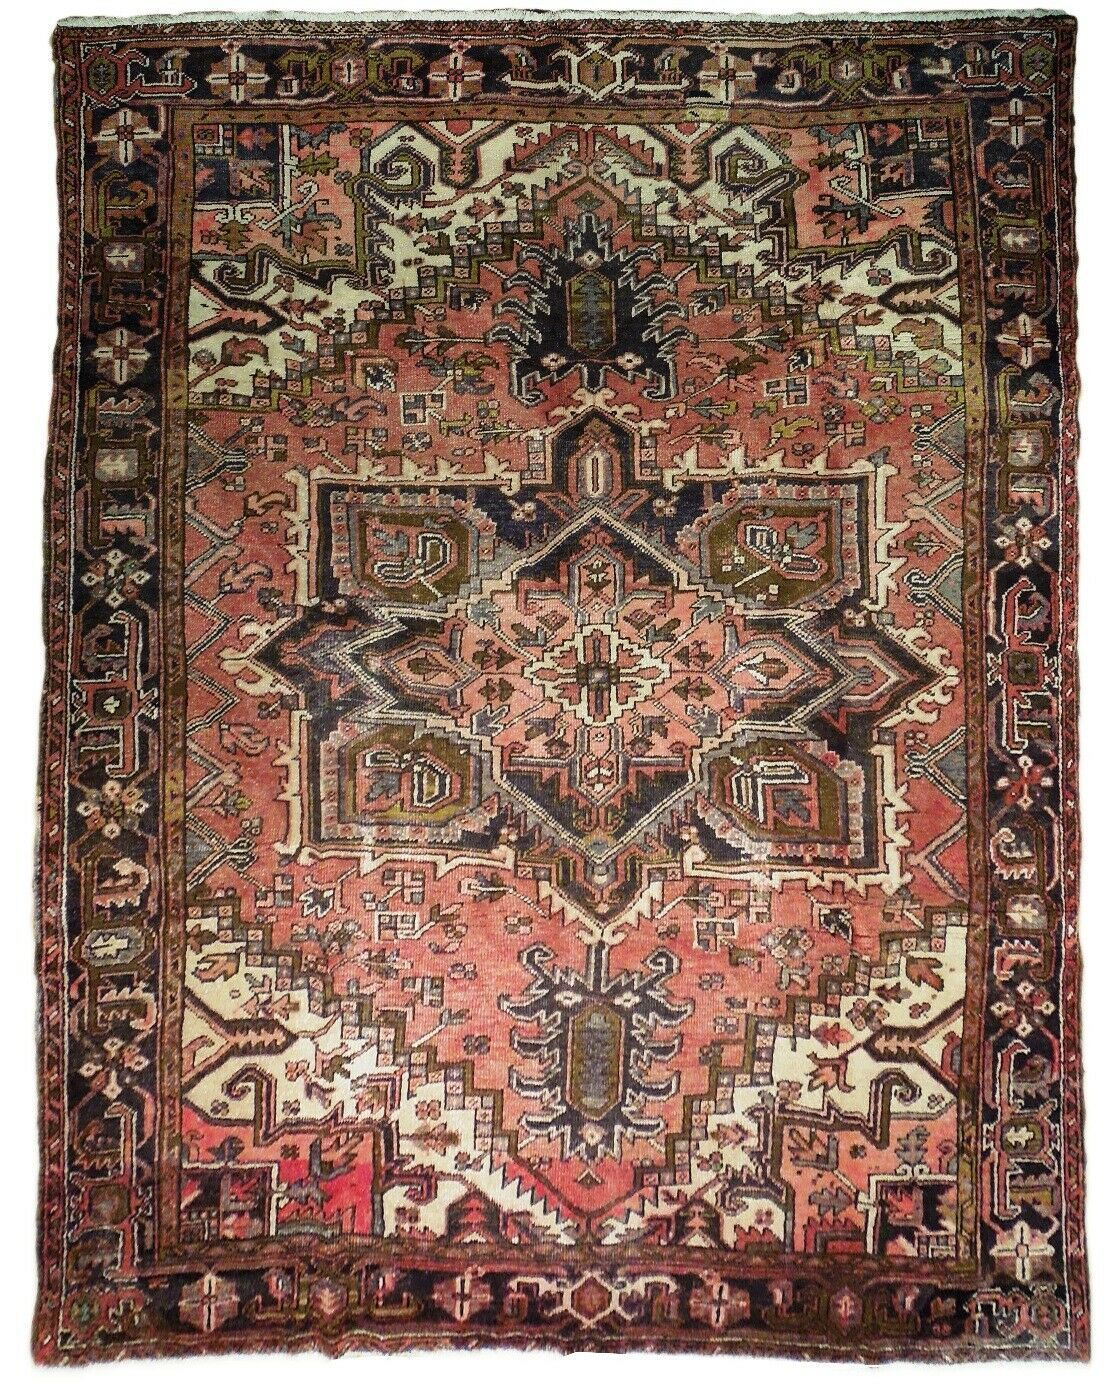 8x11 Red Heriz Wool Handmade Rust Worn-out Antique over 100 y o Persian Rug